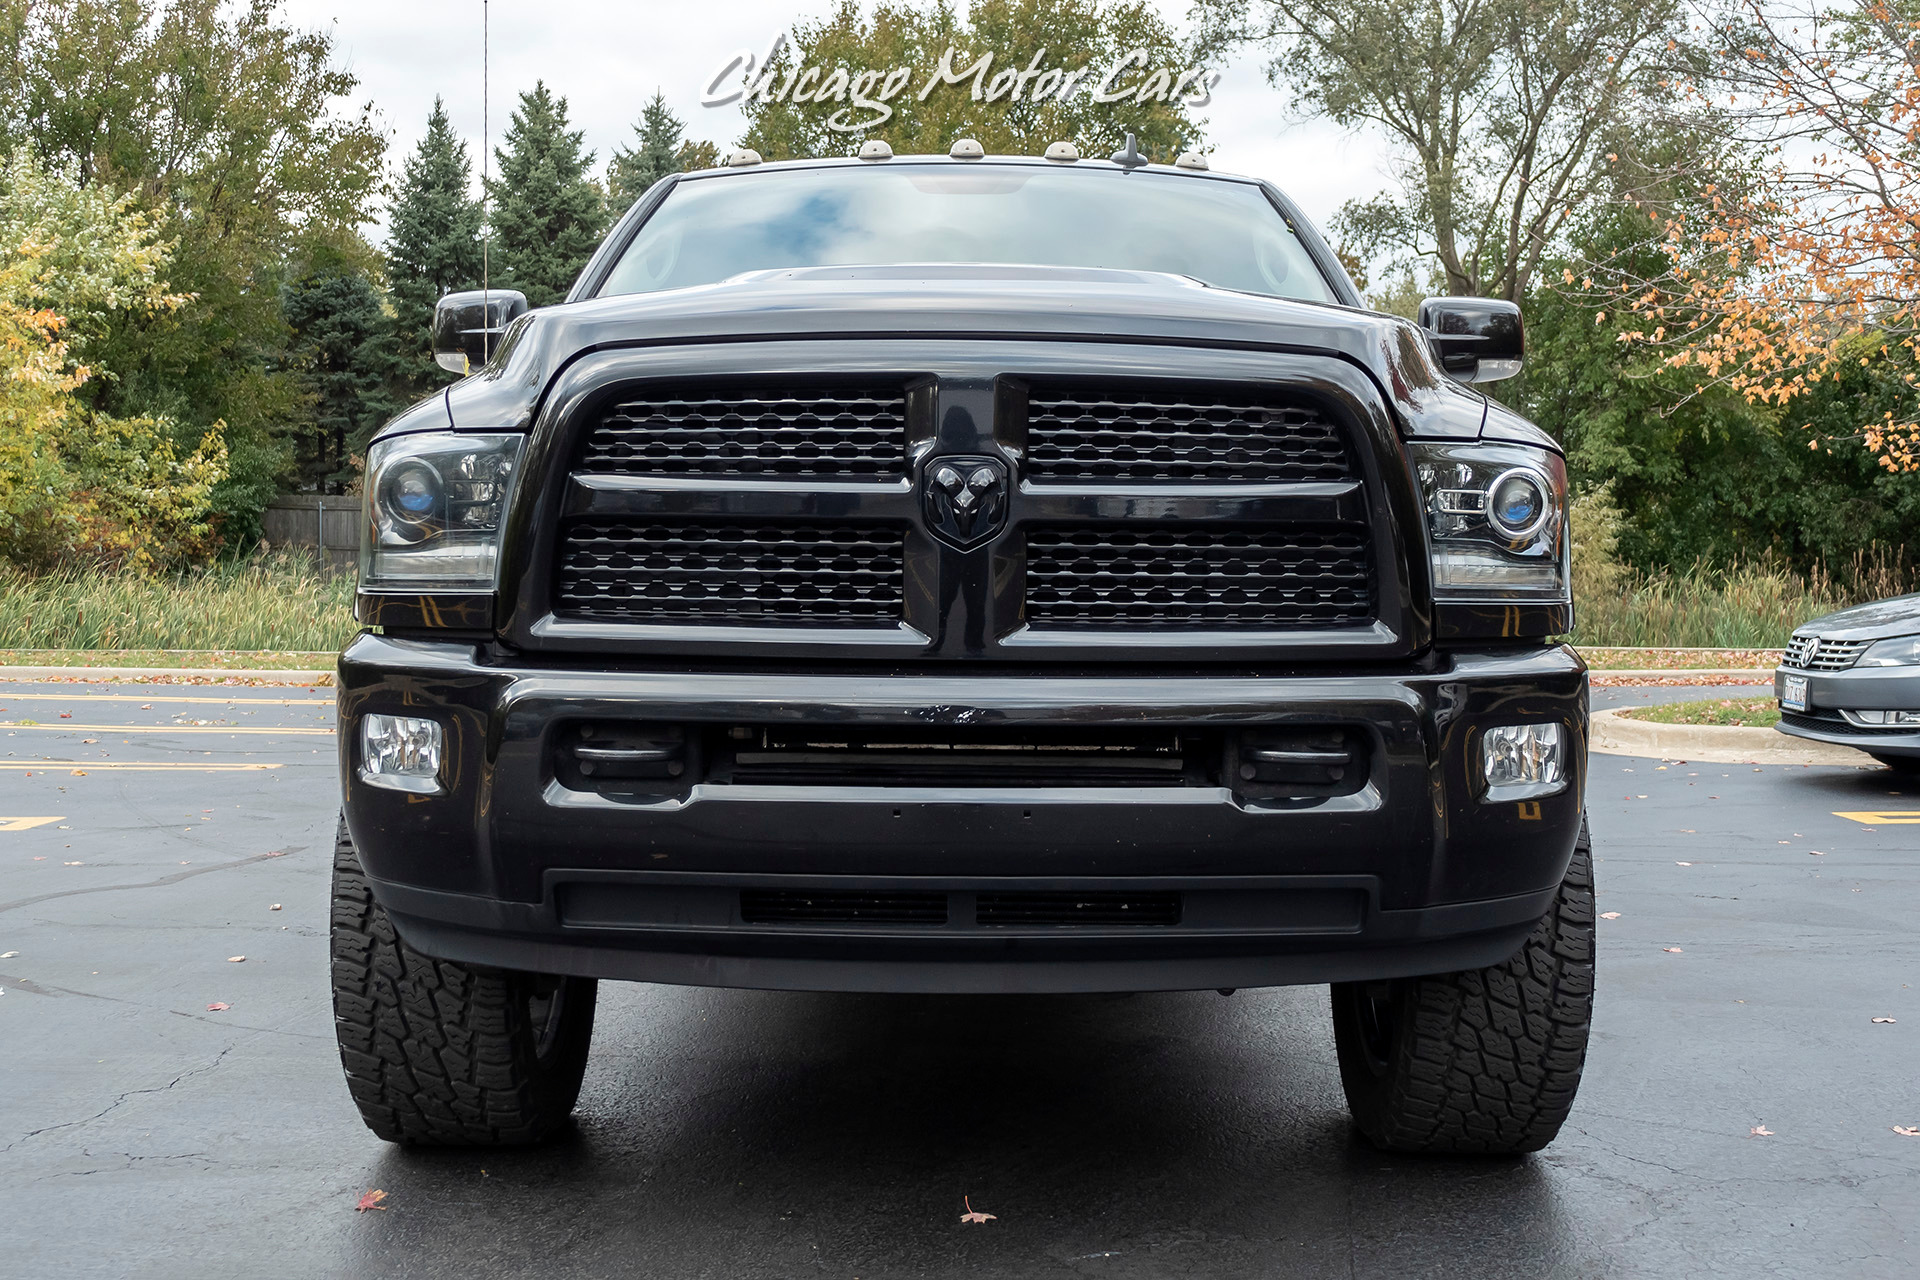 Used-2015-Ram-2500-Laramie-Mega-Cab-4x4-67L-Diesel-LOADED-WFACTORY-OPTIONS---UPGRADES